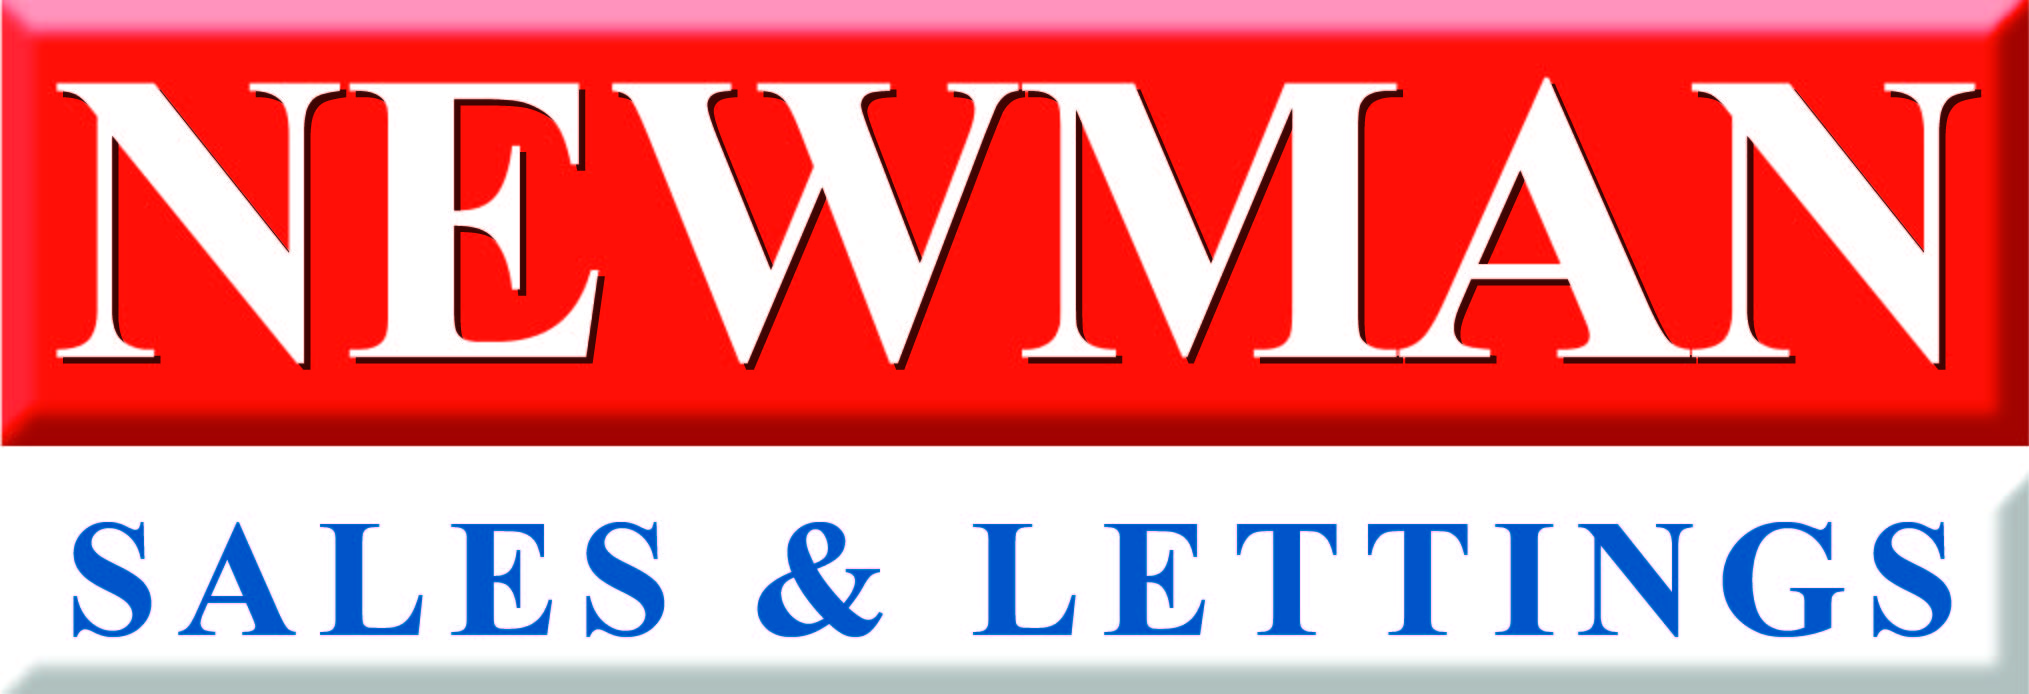 newman_sales_and_lettings_logo-01